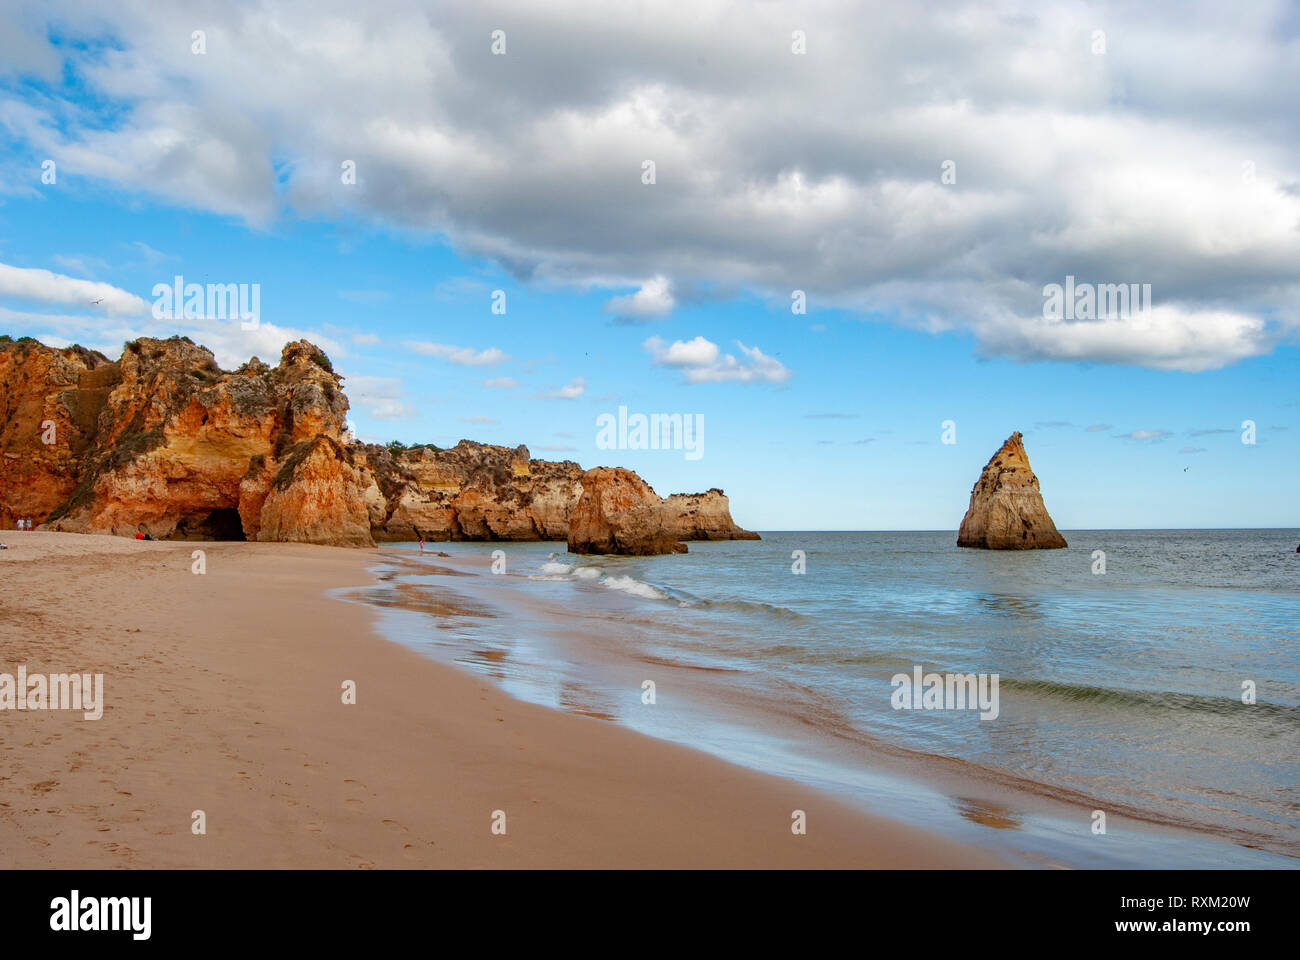 Sandy cloudy beach Dos Tres Irmaos spring view in Algarve, Portugal Stock Photo